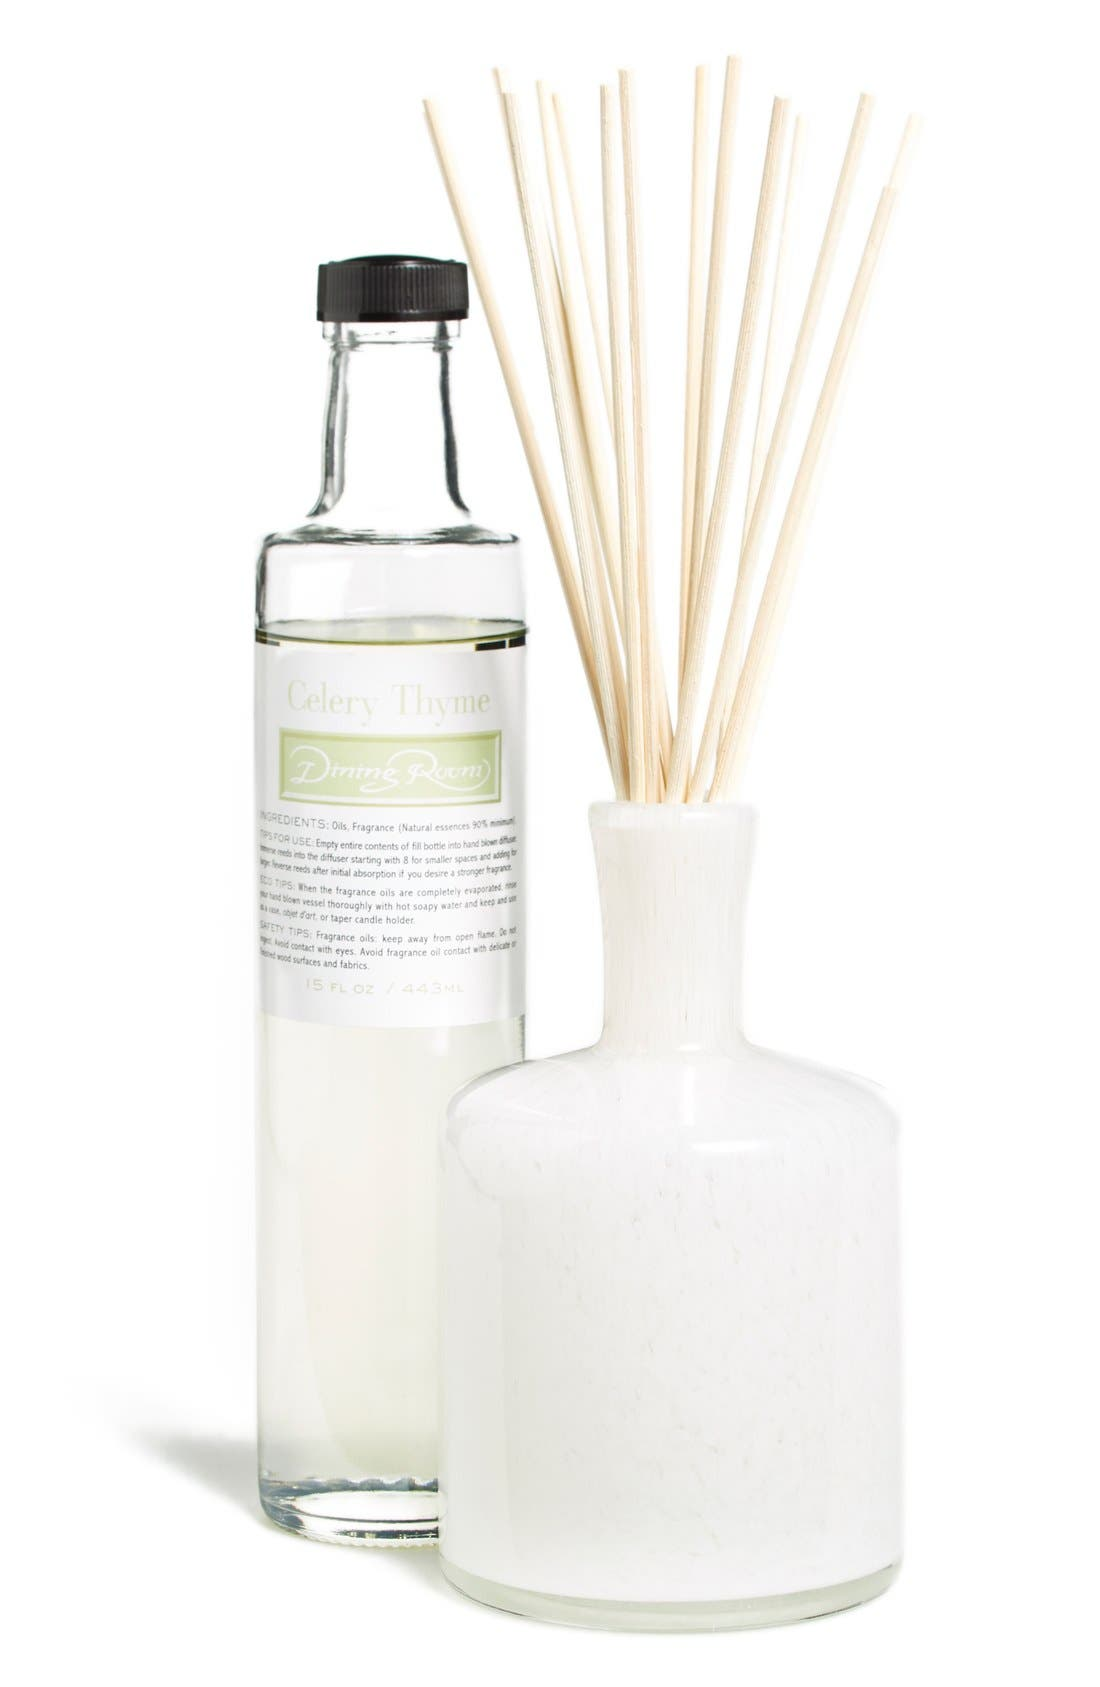 Lafco 'Celery Thyme - Dining Room' Fragrance Diffuser